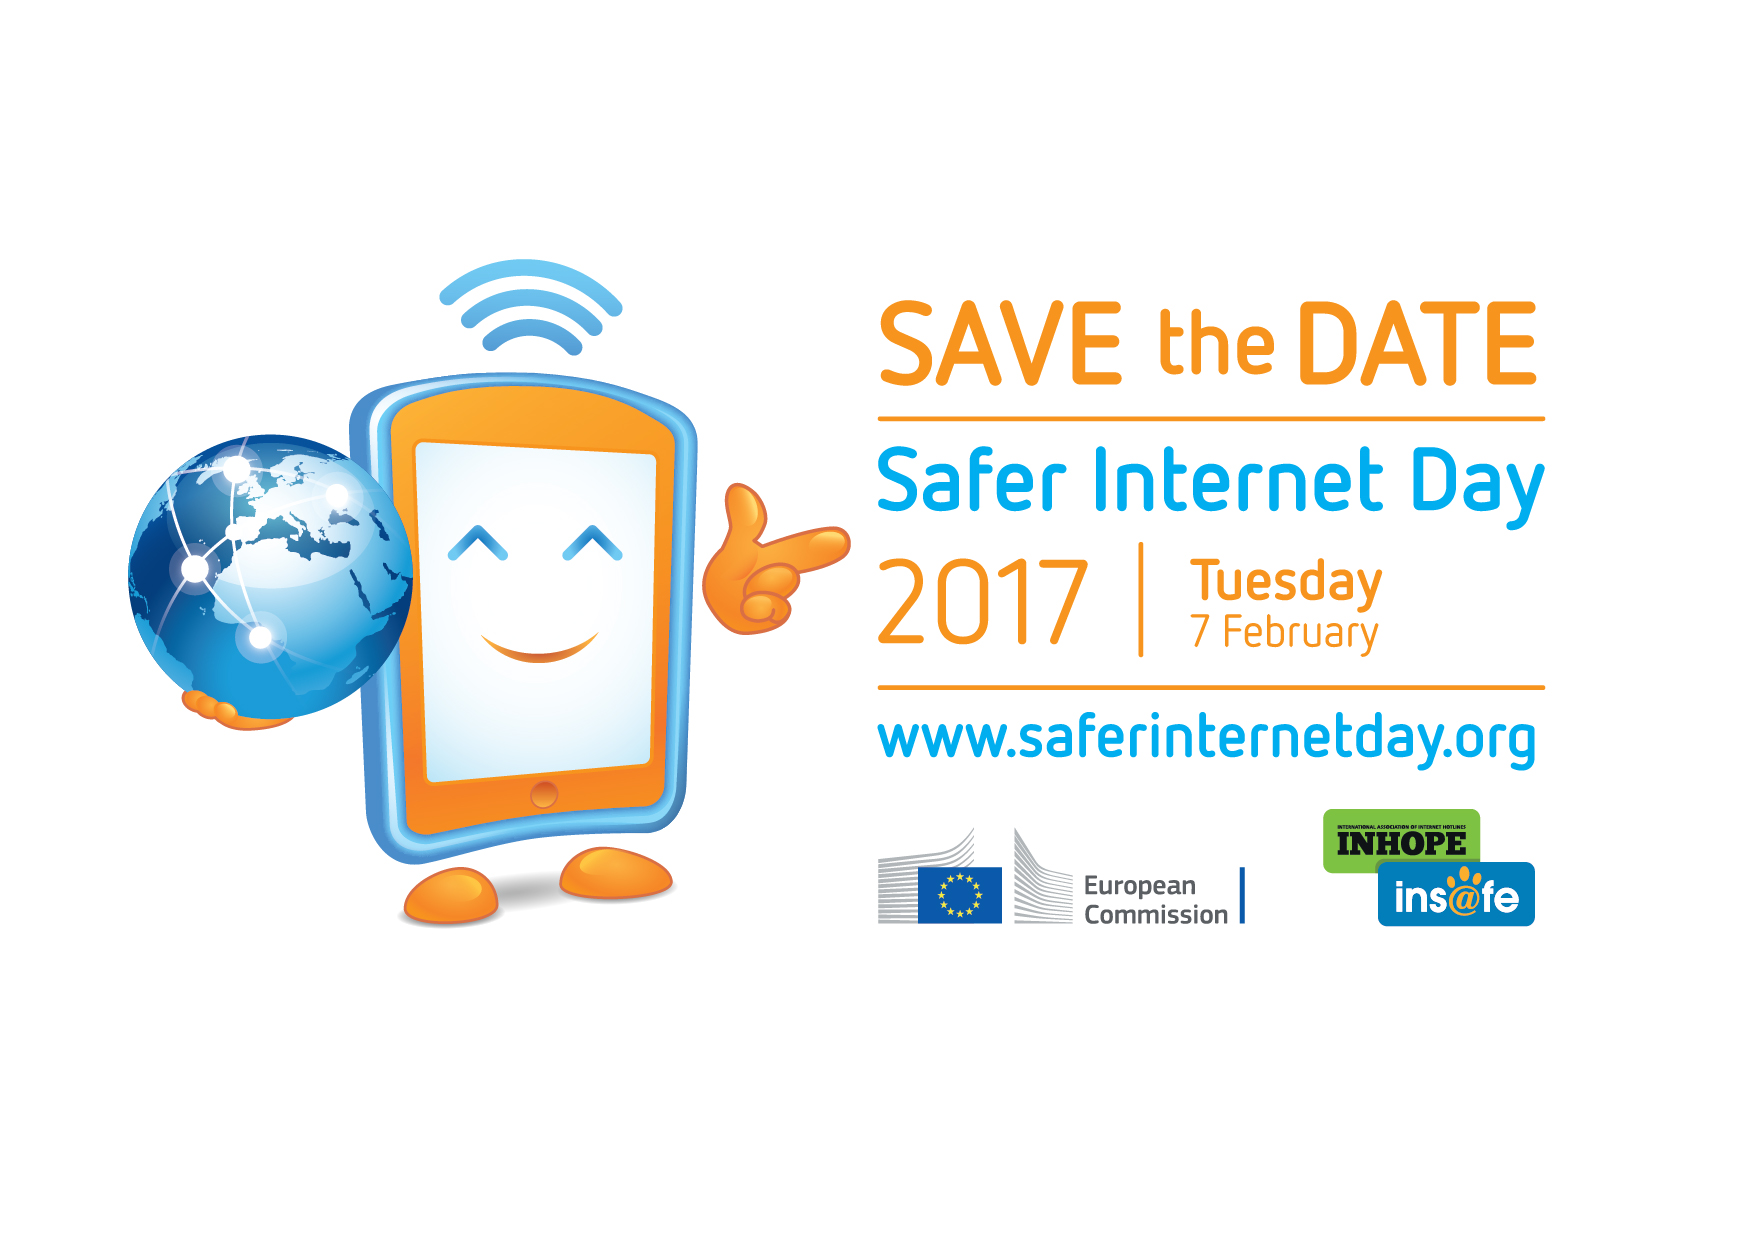 What are you doing for Safer Internet Day?